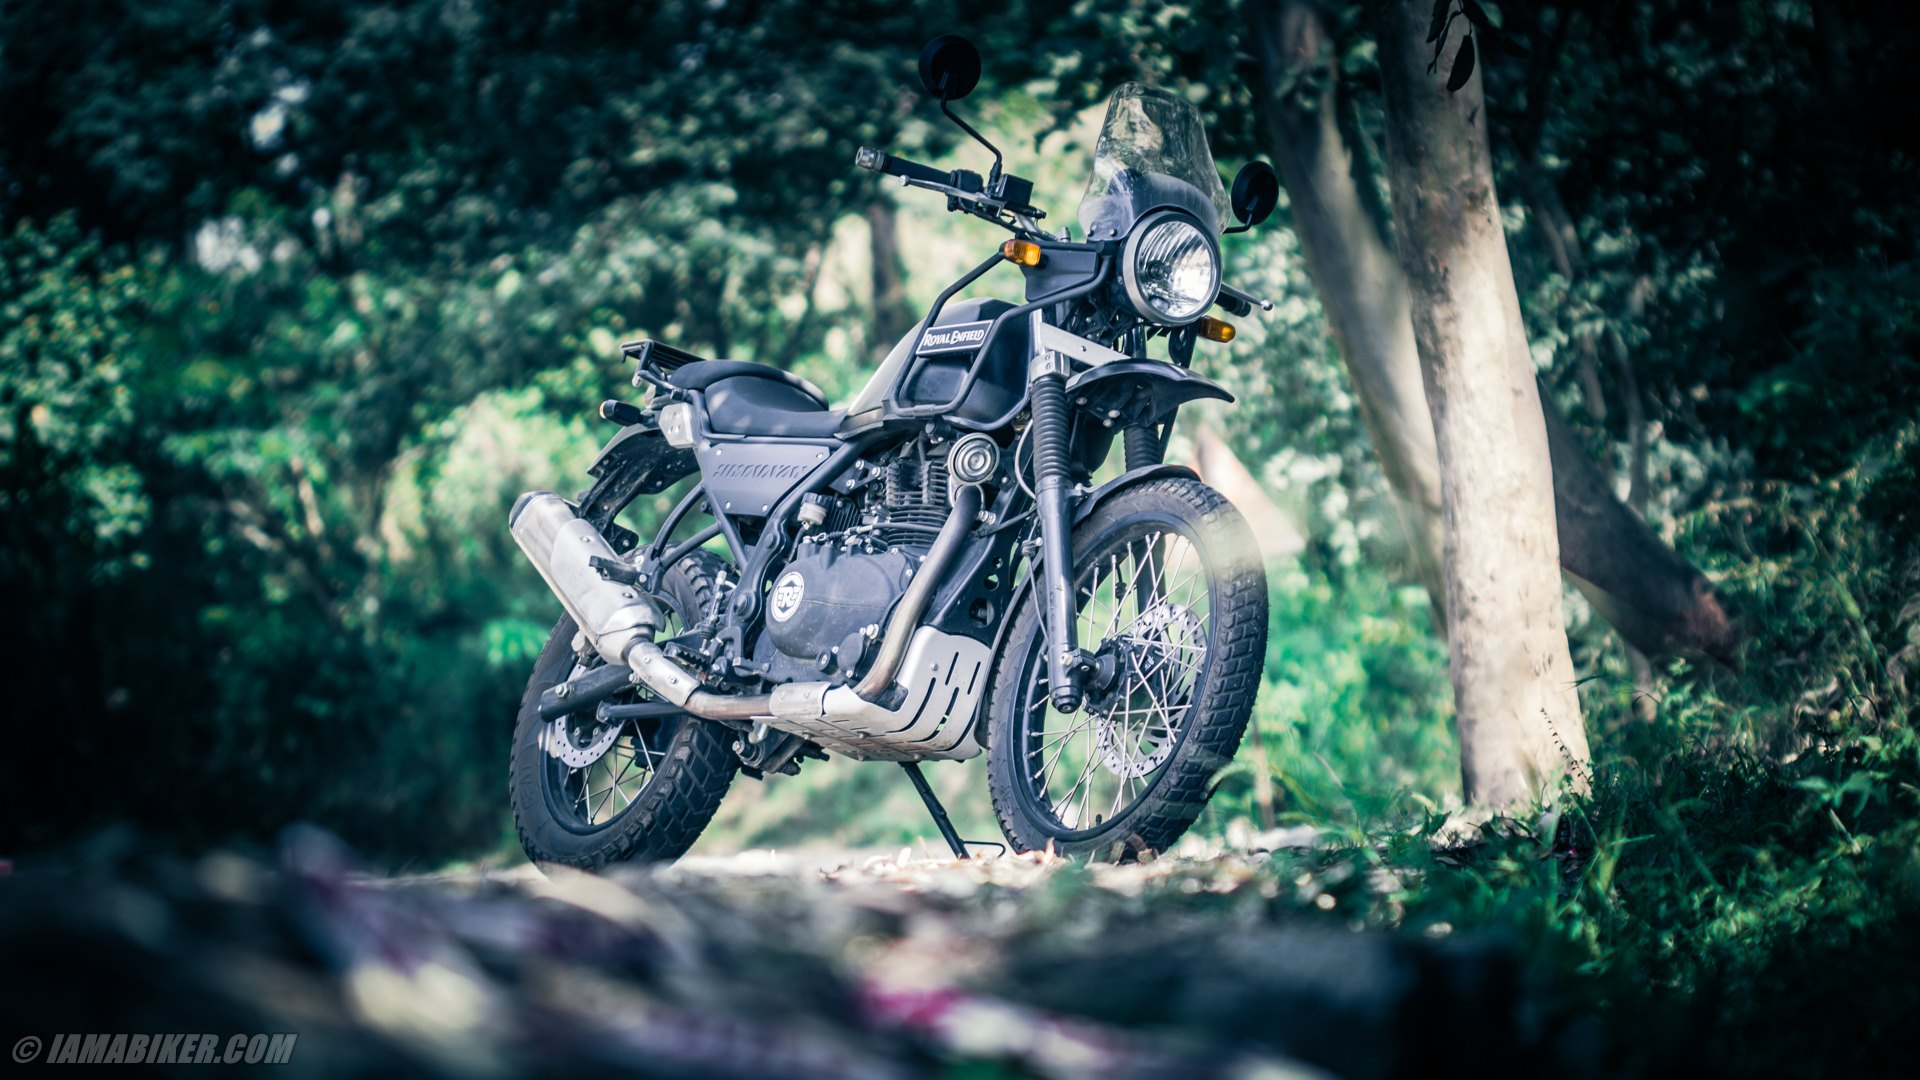 Royal Enfield Himalayan HD wallpapers | IAMABIKER - Everything